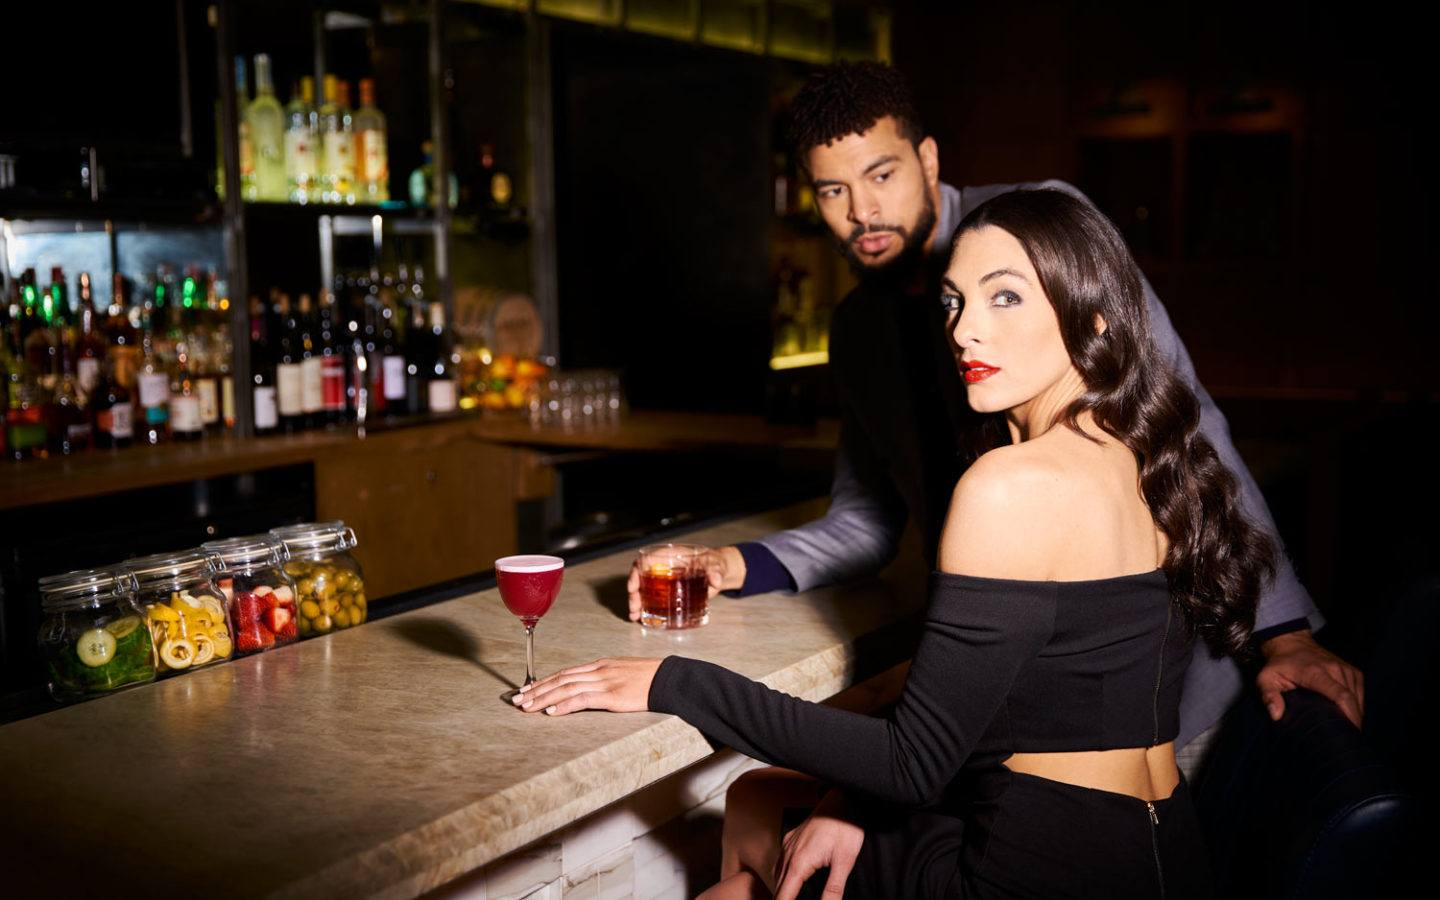 two people sitting at a bar with drinks